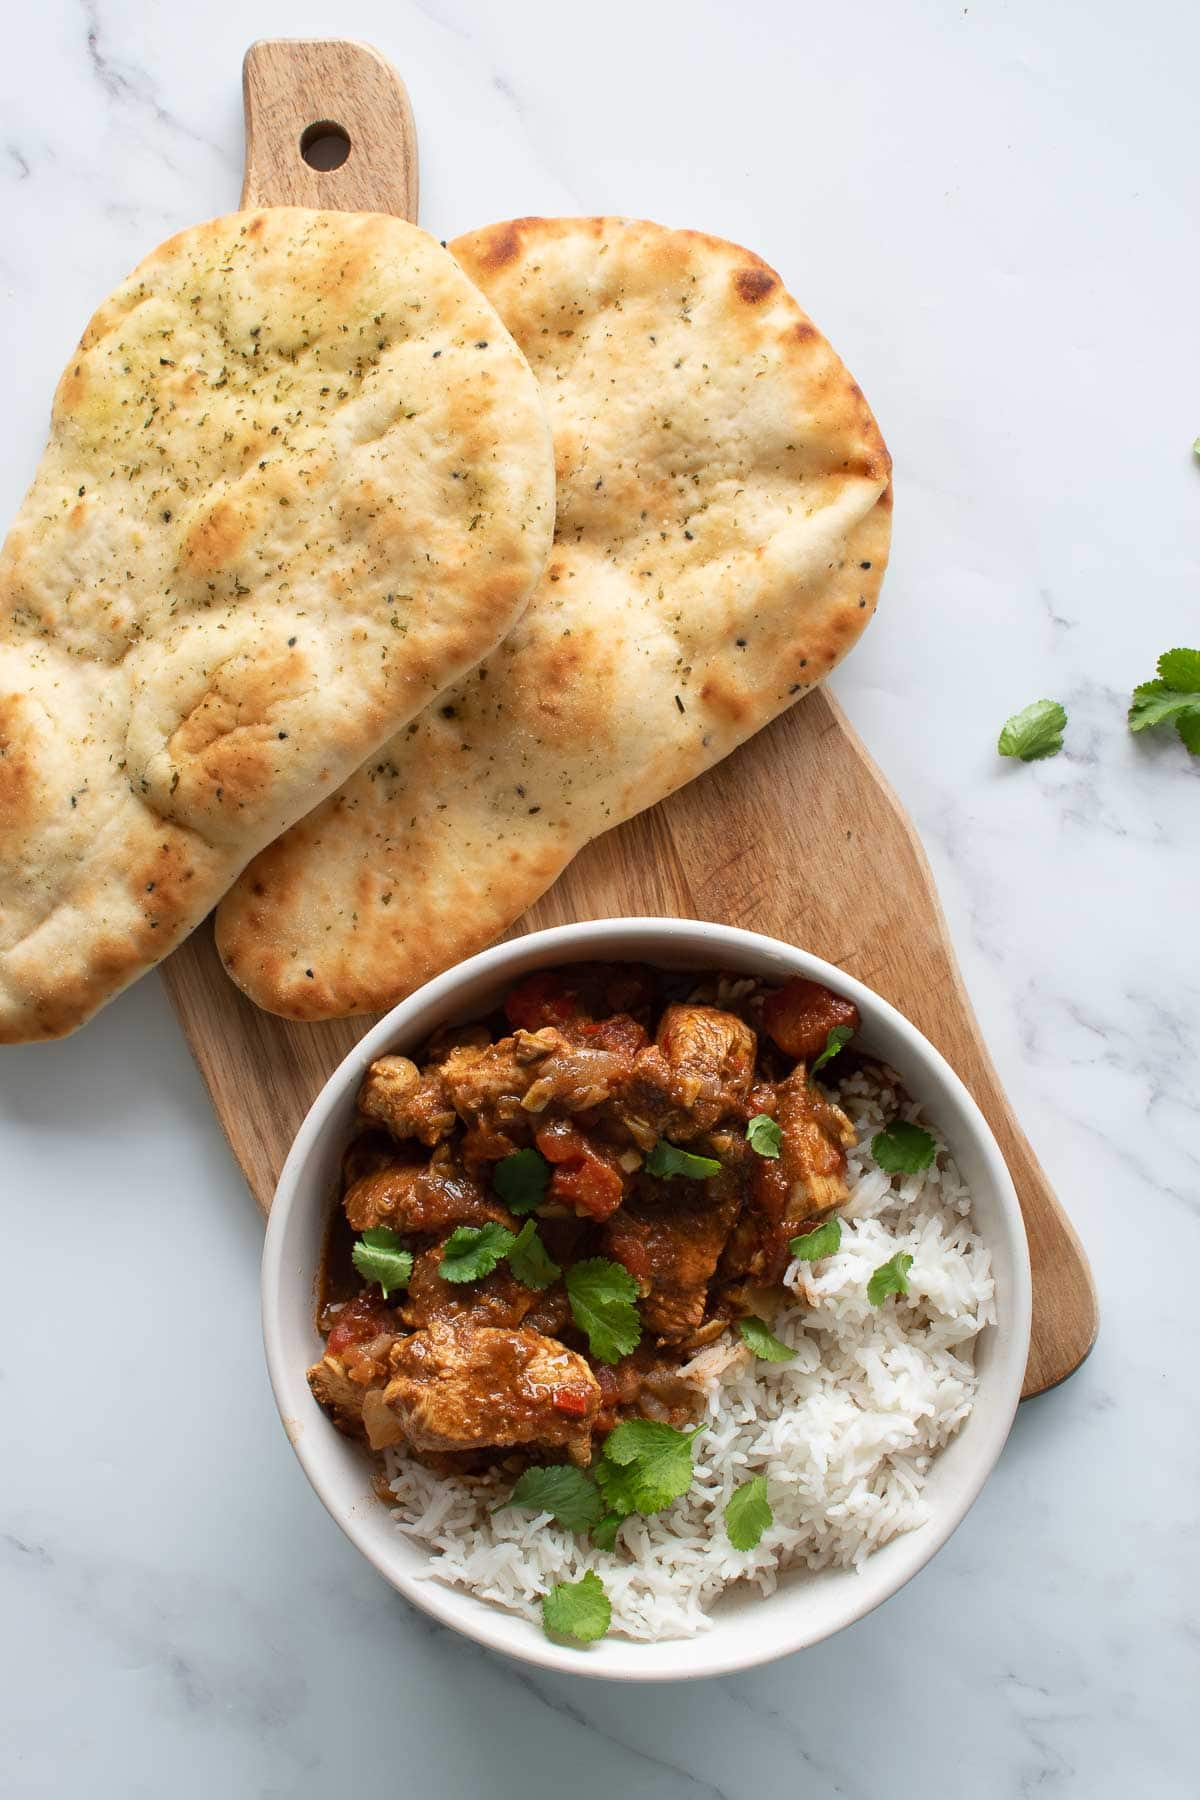 A bowl of chicken curry with naan on the side.